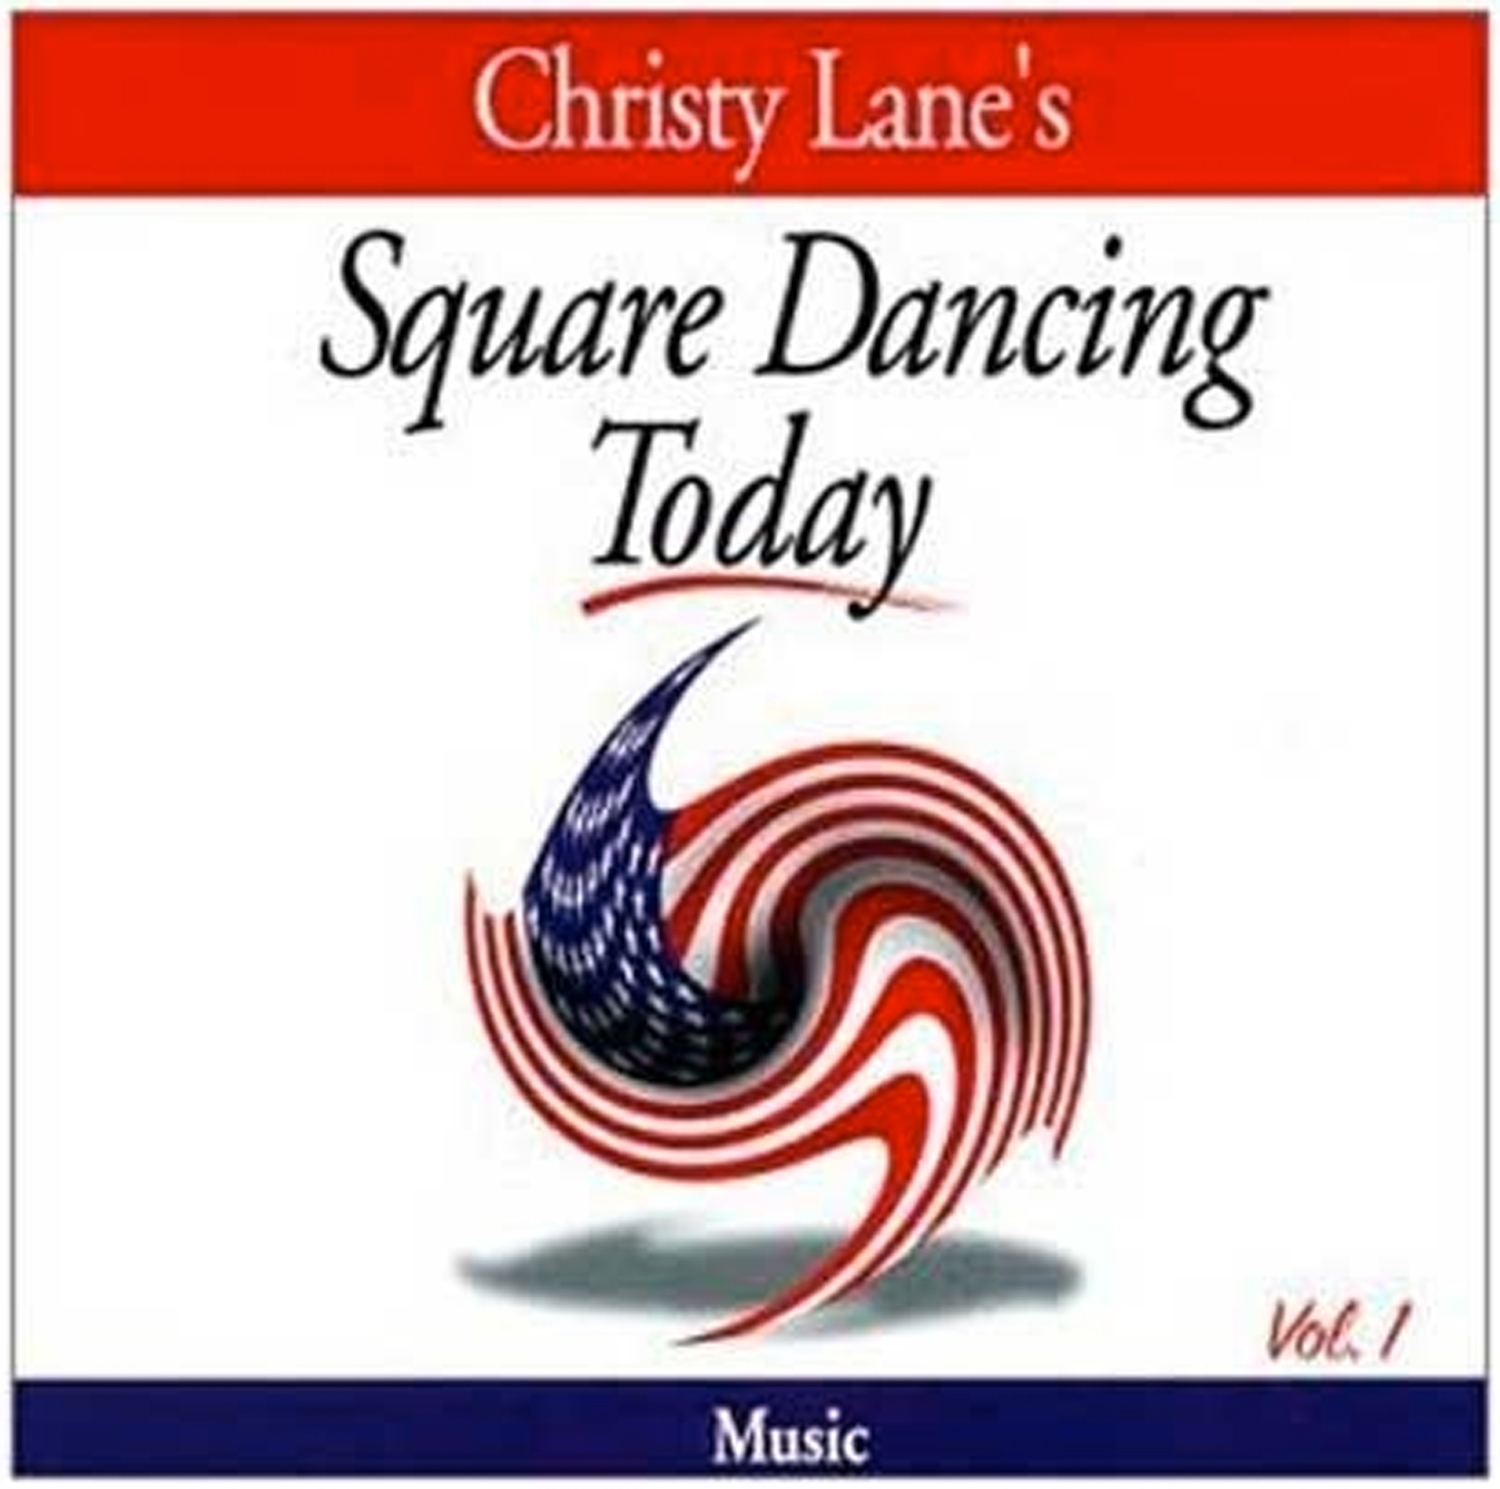 P.E. square dancing CD and DVD set